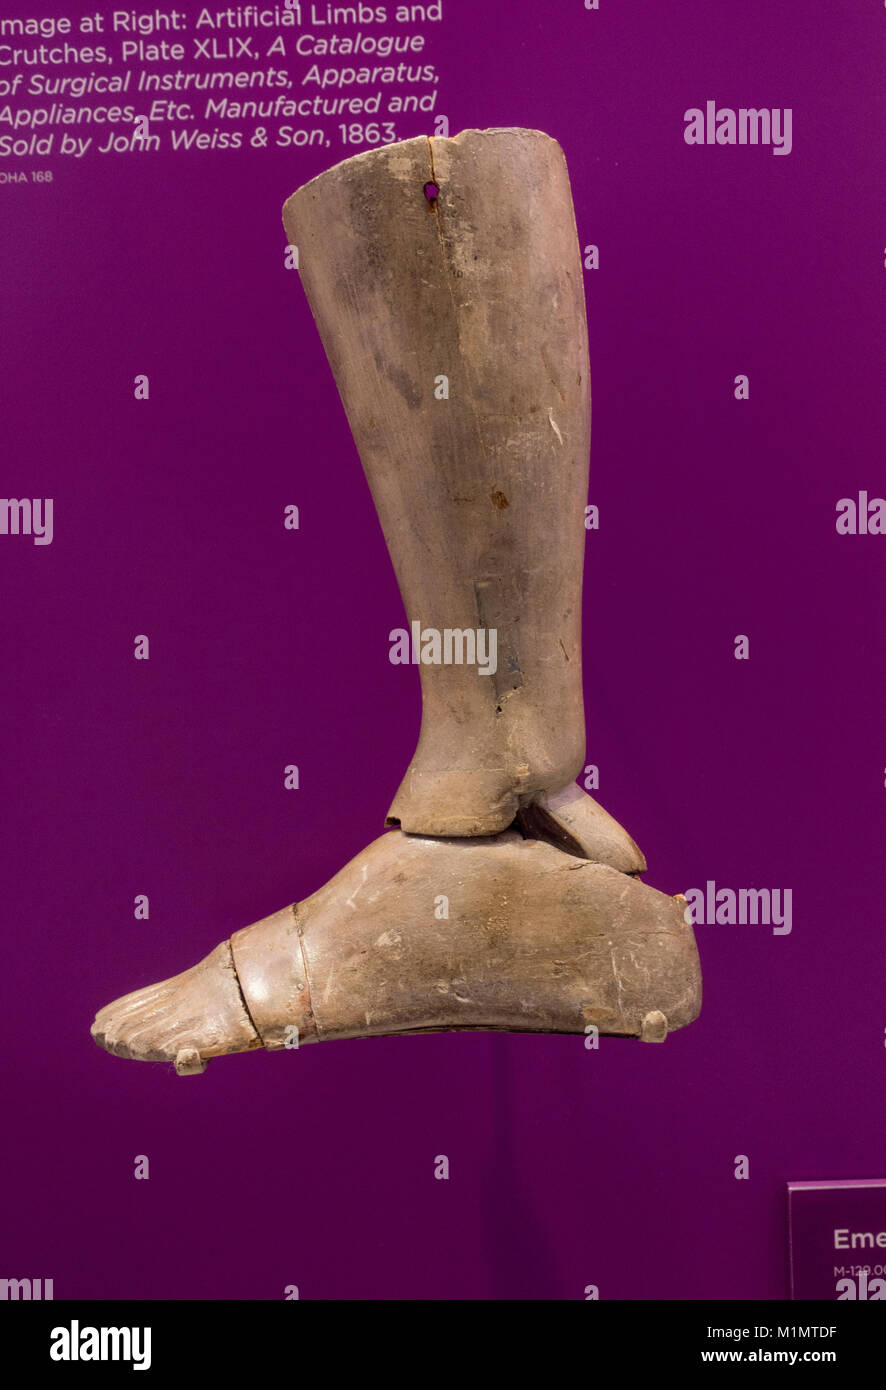 An Emery artificial leg (ca 1870) on display in the National Museum of Health and Medicine, Silver Spring, MD, USA. - Stock Image